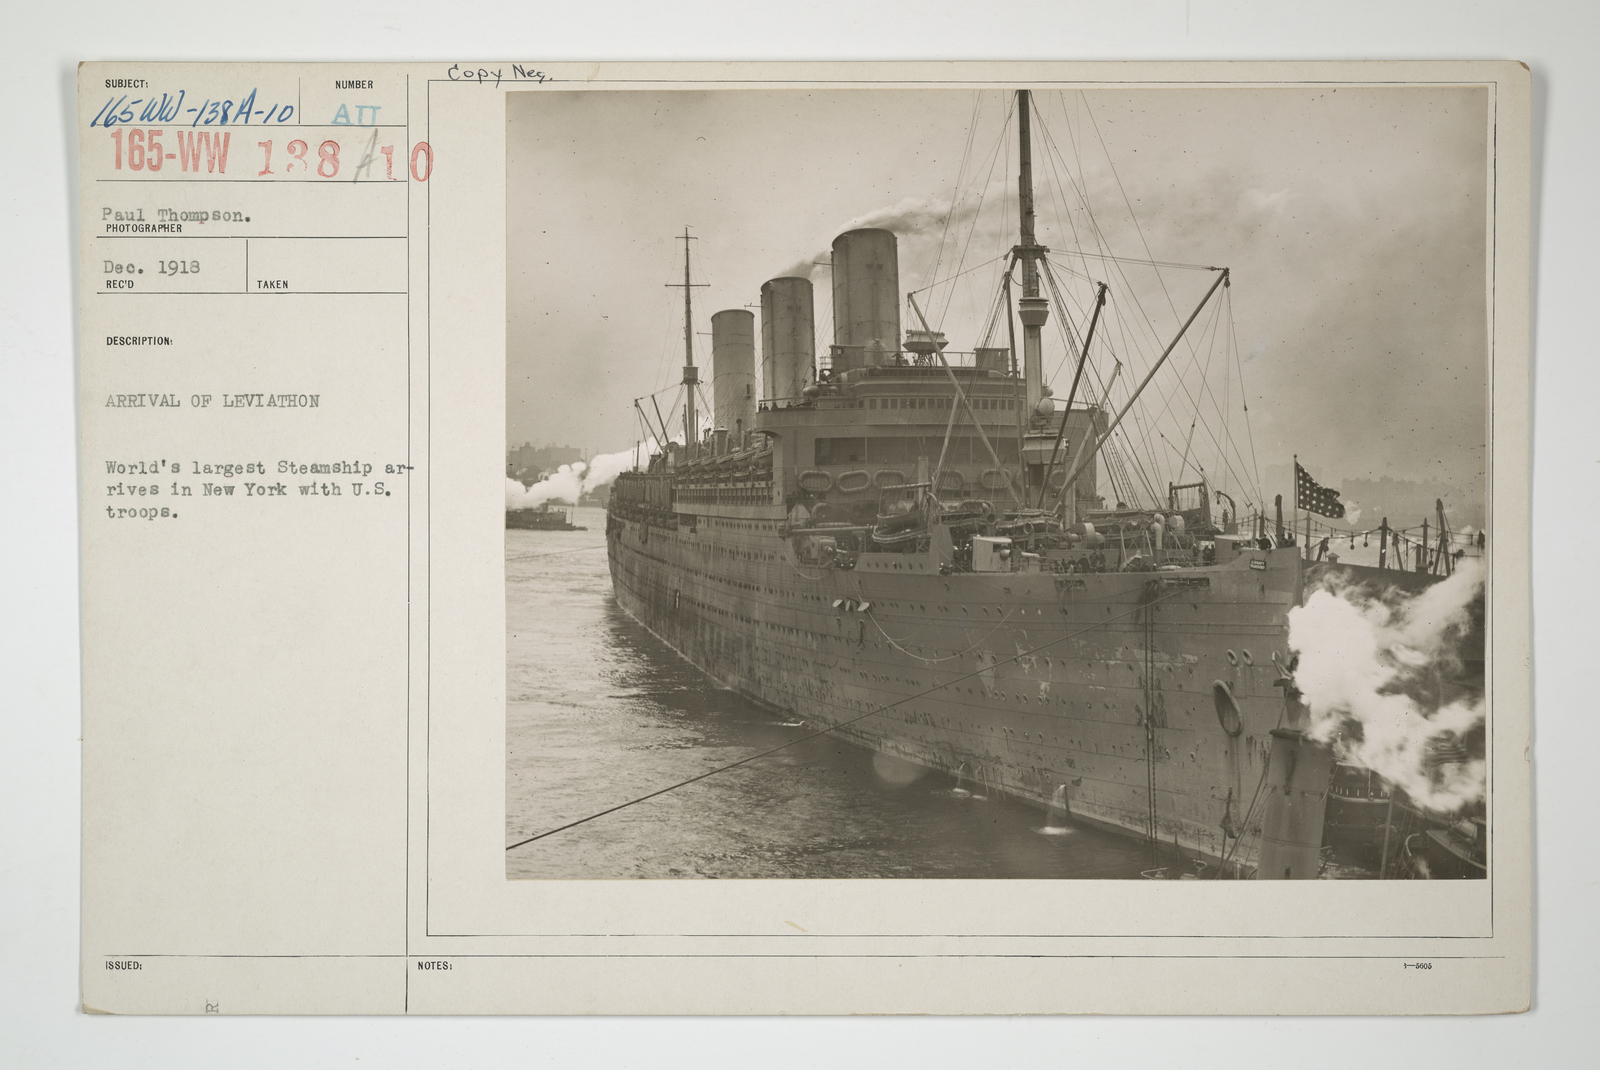 Demobilization - Miscellaneous - Arrival of Leviathan. World's largest steamship arrives in New York with U.S. troops